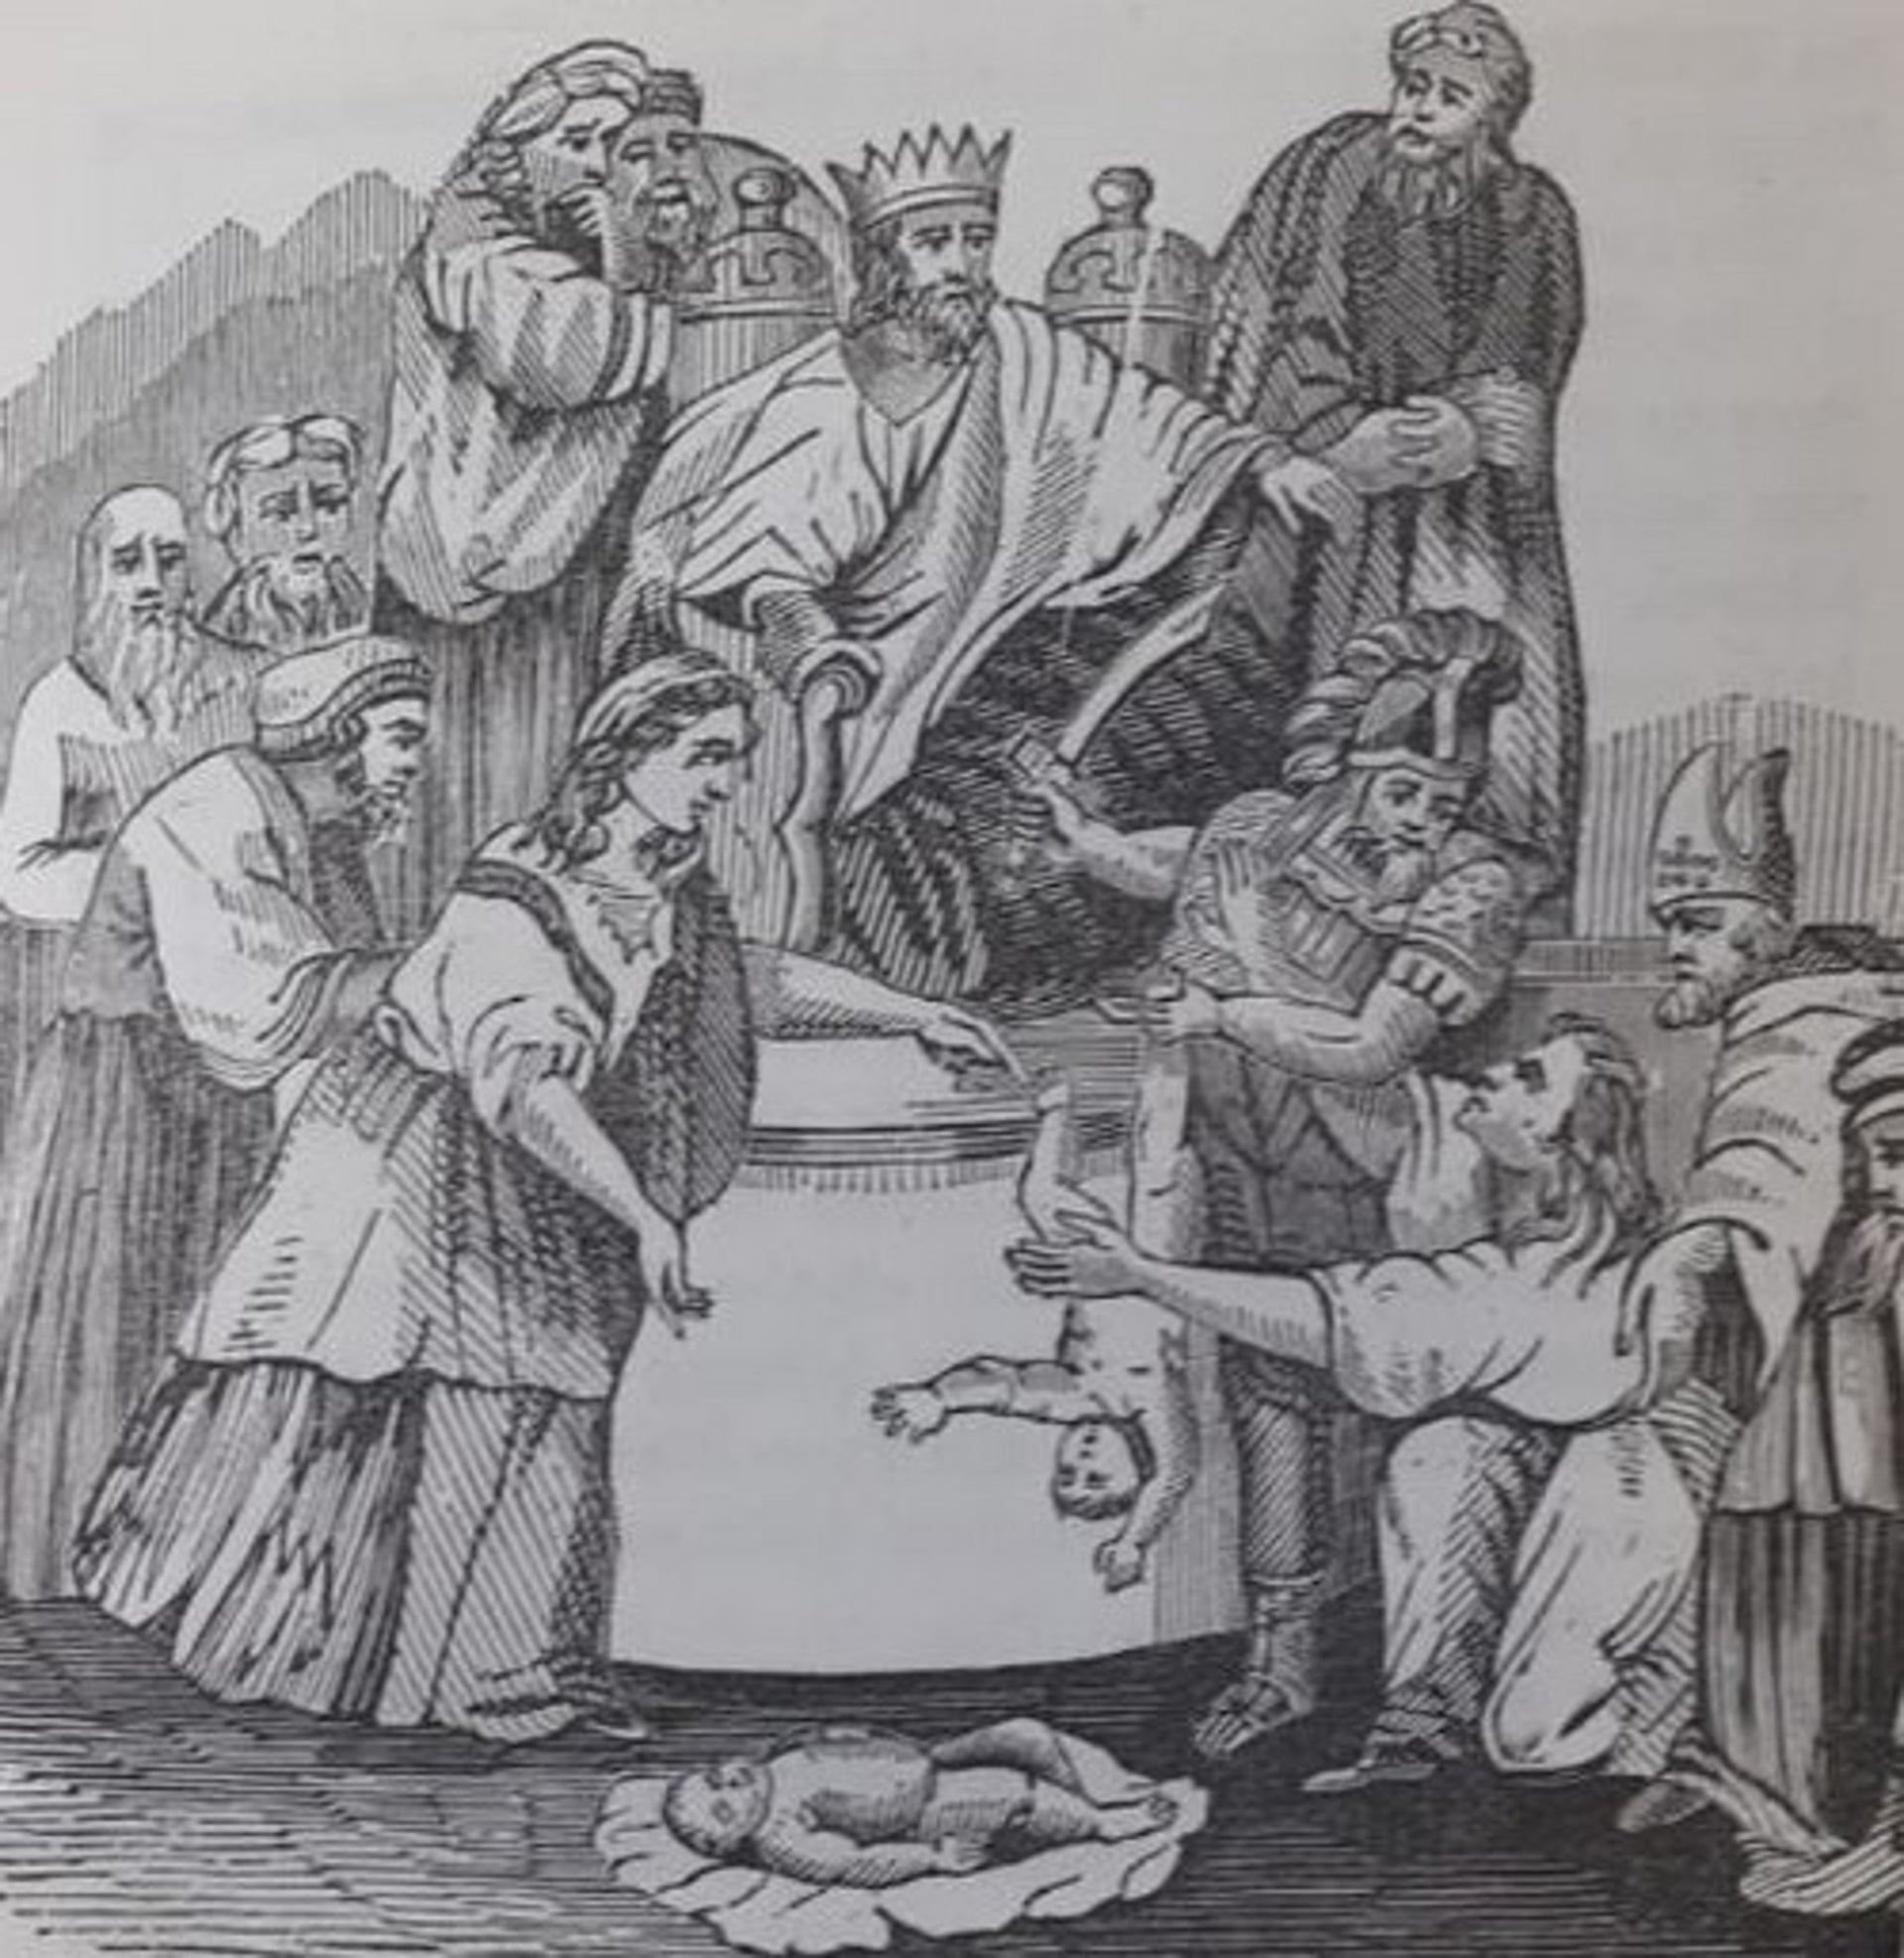 King Solomon's Judgement: Cresson alludes to the righteous King's judgment as choosing between Judaism and Christianity.